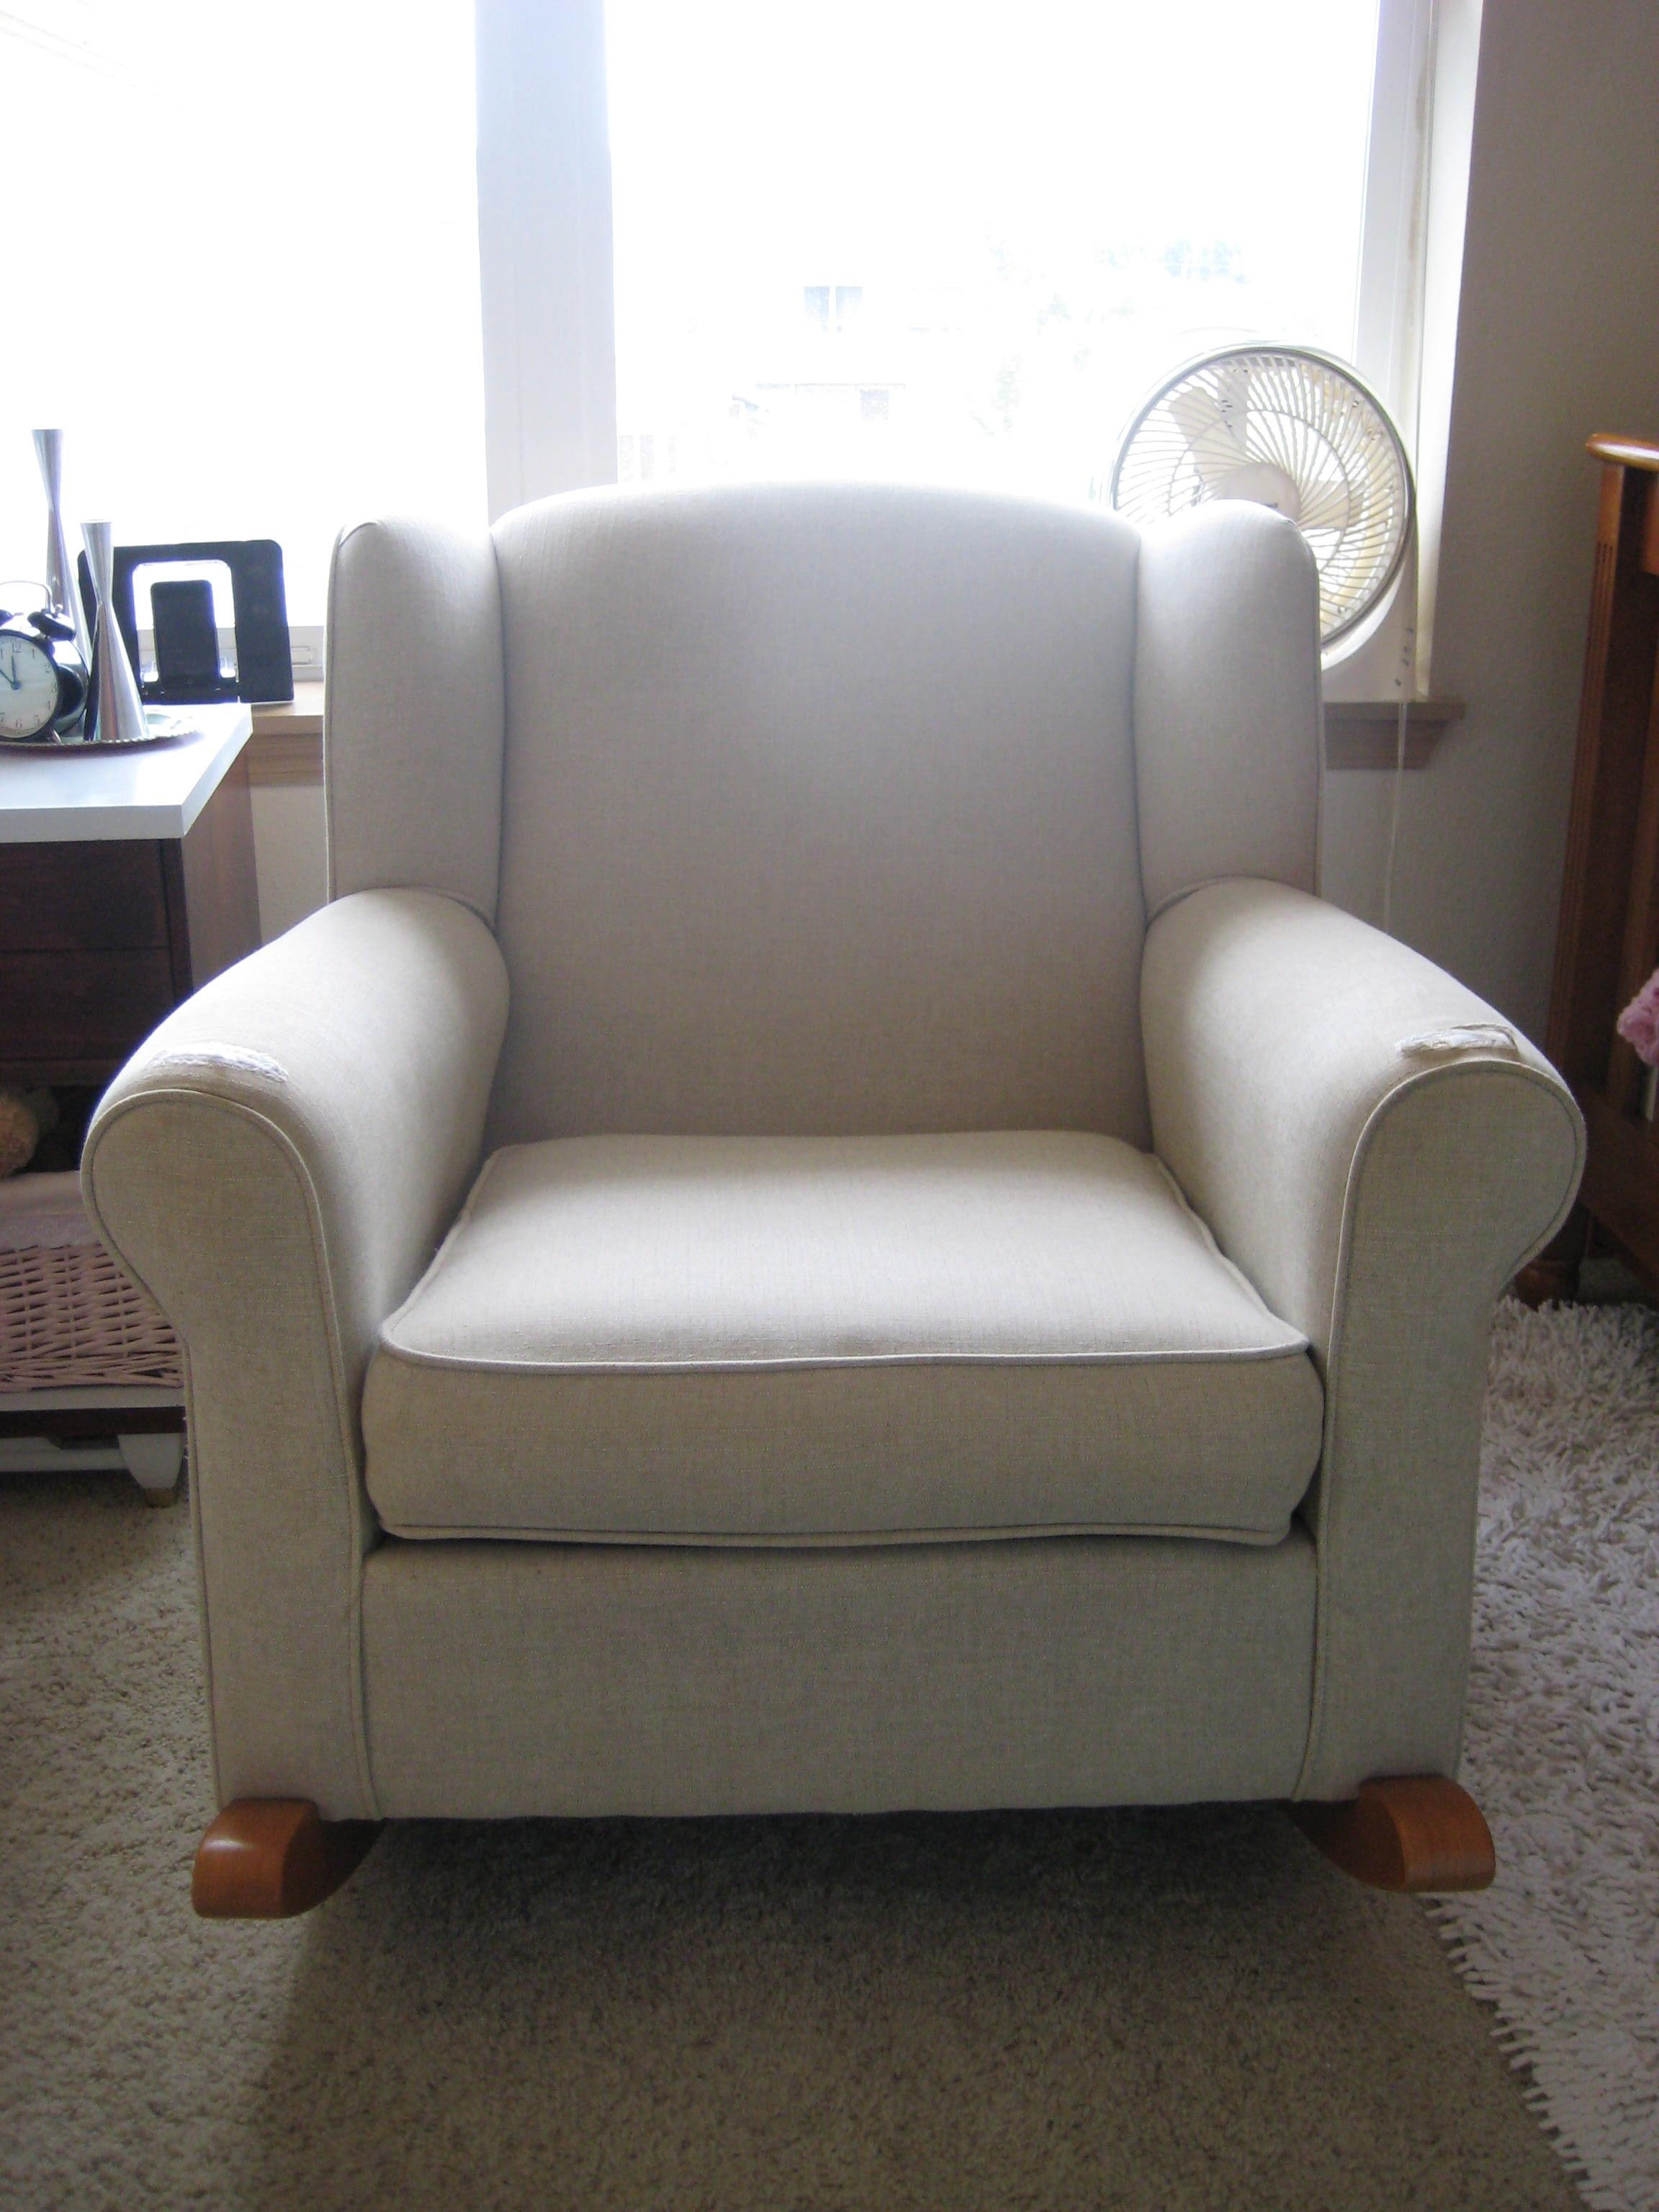 sofa rocking chair beds melbourne victoria 20 top chairs ideas